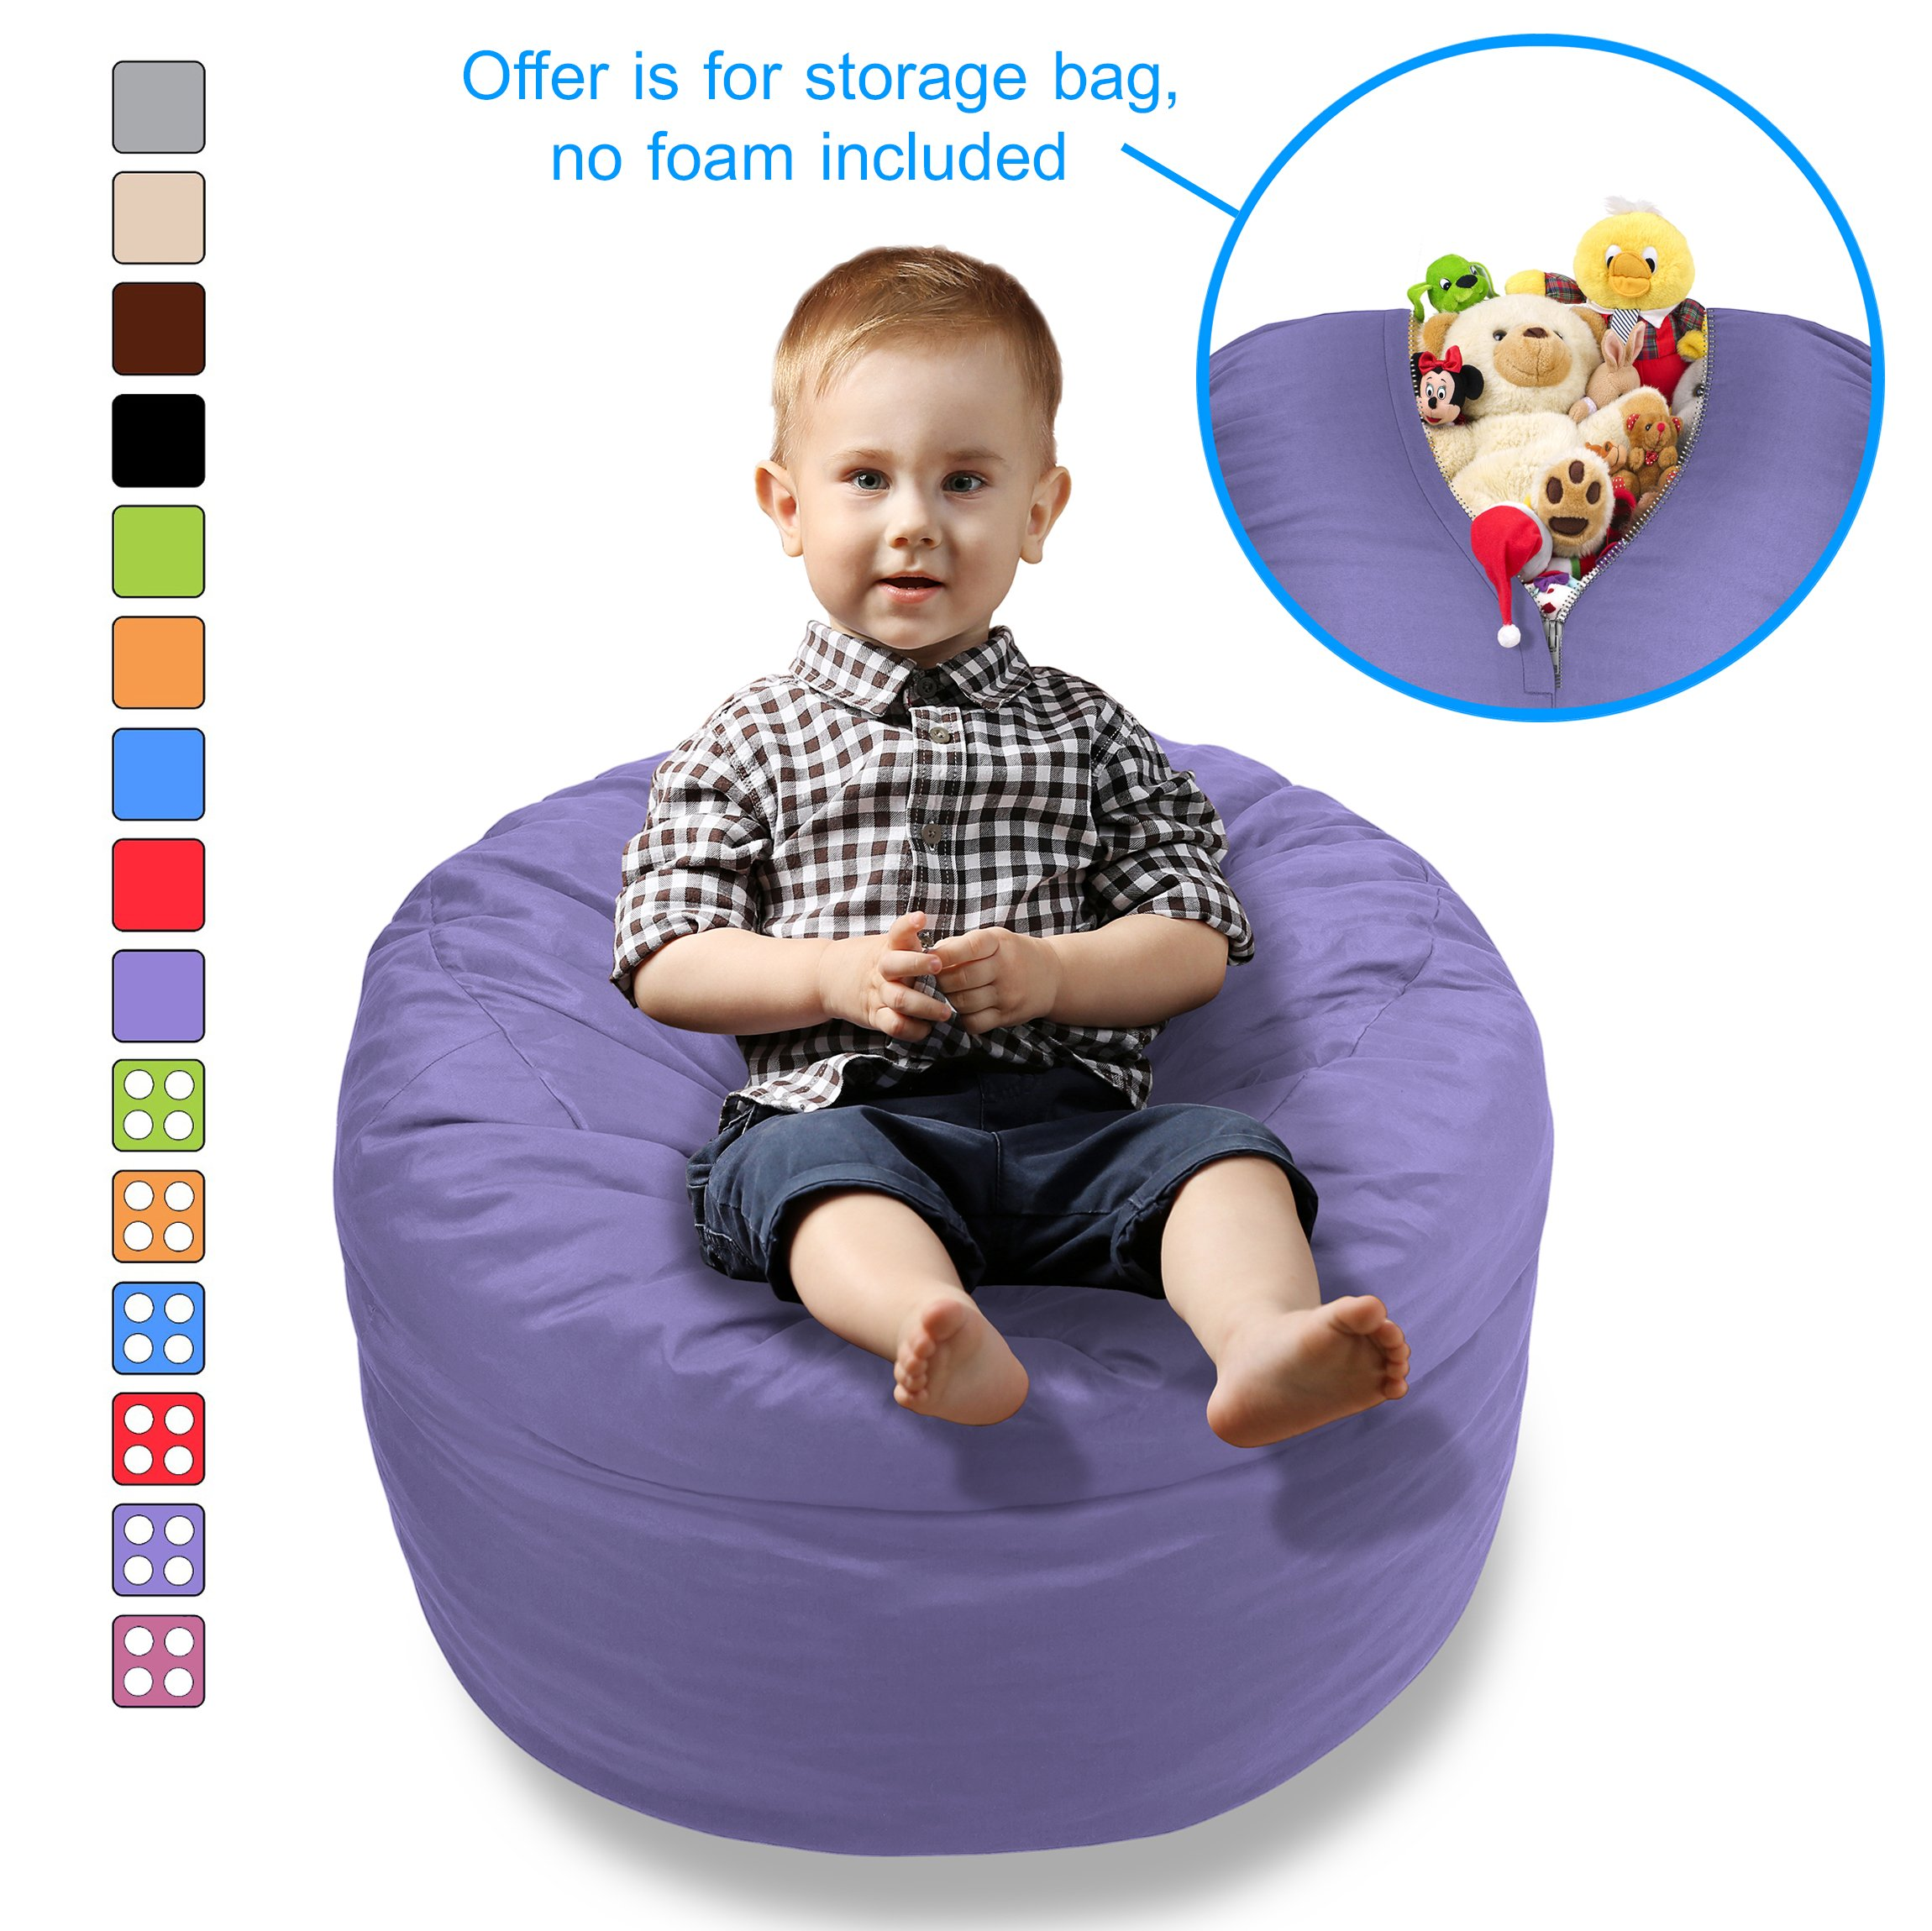 BeanBob Stuffed Animal Bean Bag - Kids Stuffed Animal Storage Bag Chair - Pouf Ottoman for Toy Storage (Medium - 2ft, Purple)